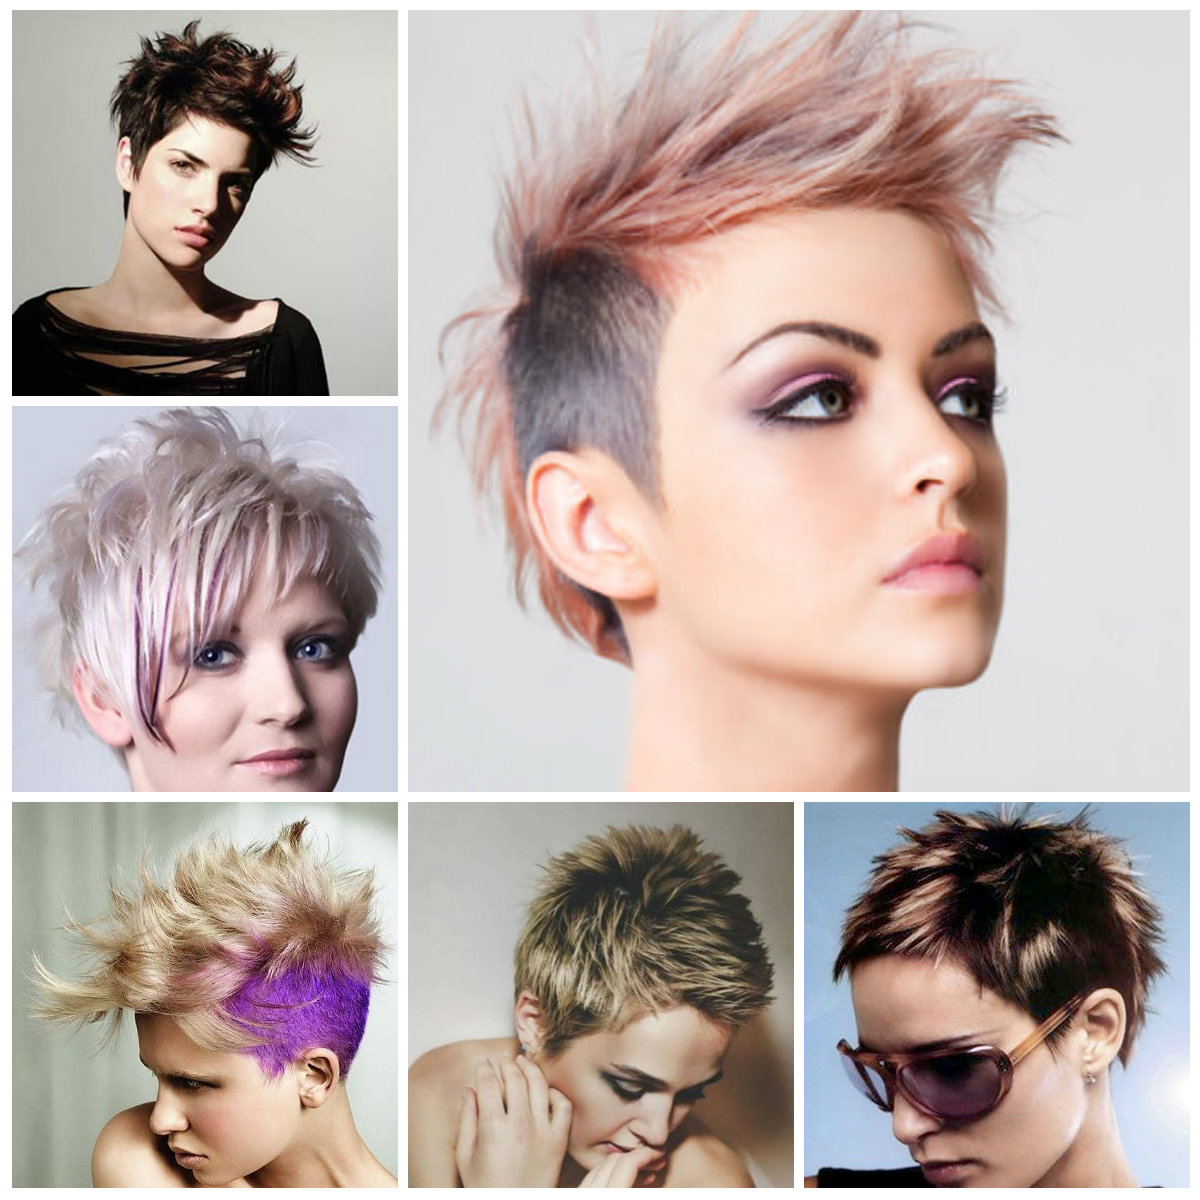 2019 Trendy Short Spiky Hairstyles For Women | Hairstyles For Women Inside Trendy Short Hair Cuts (View 6 of 25)